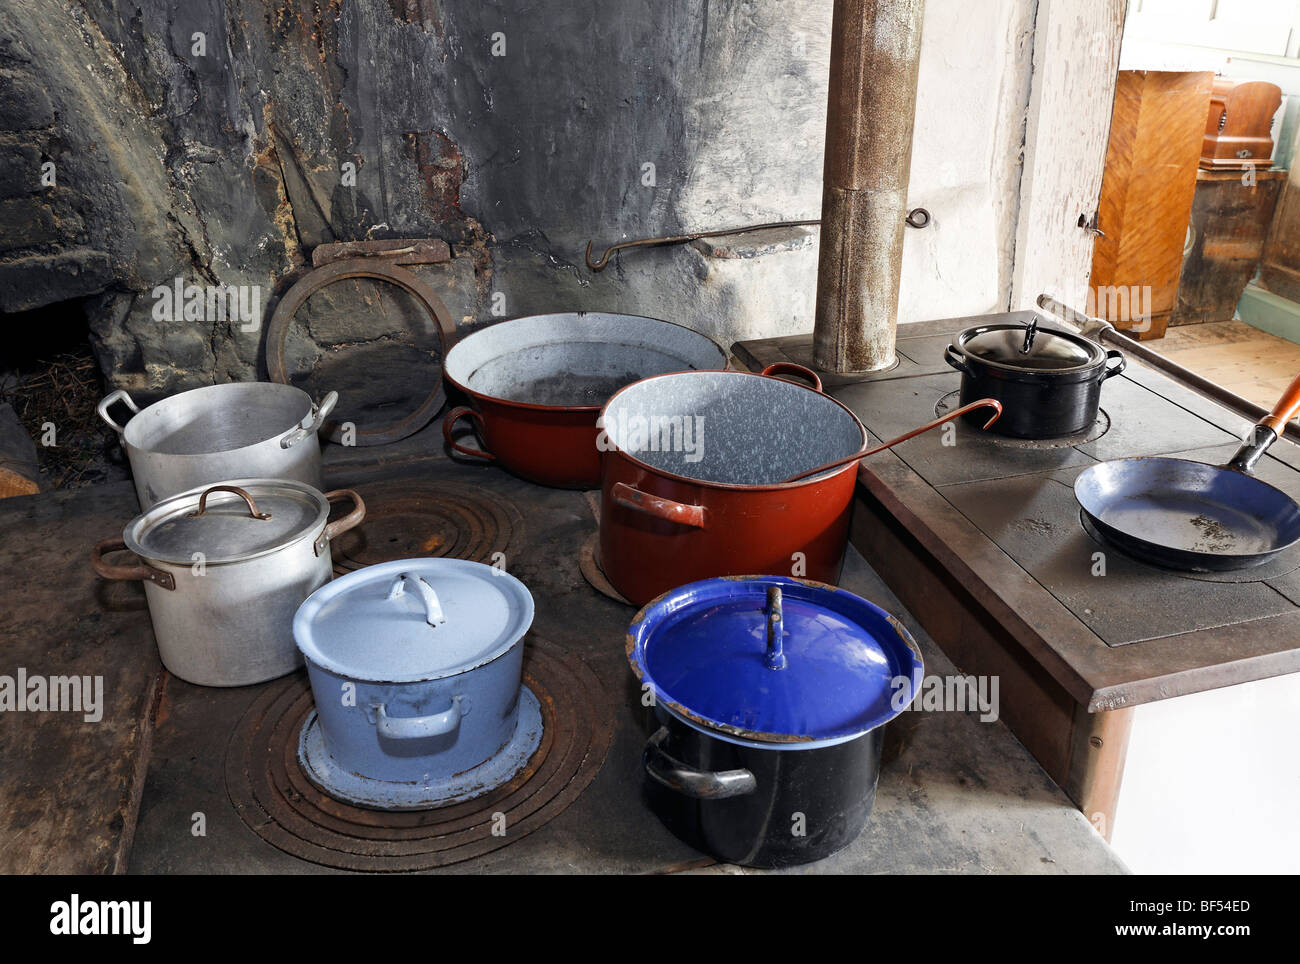 Pots on an old wood stove, kitchen in the Haus Andrinet house from 1740, Wolfegg farmhouse museum, Allgaeu region, - Stock Image